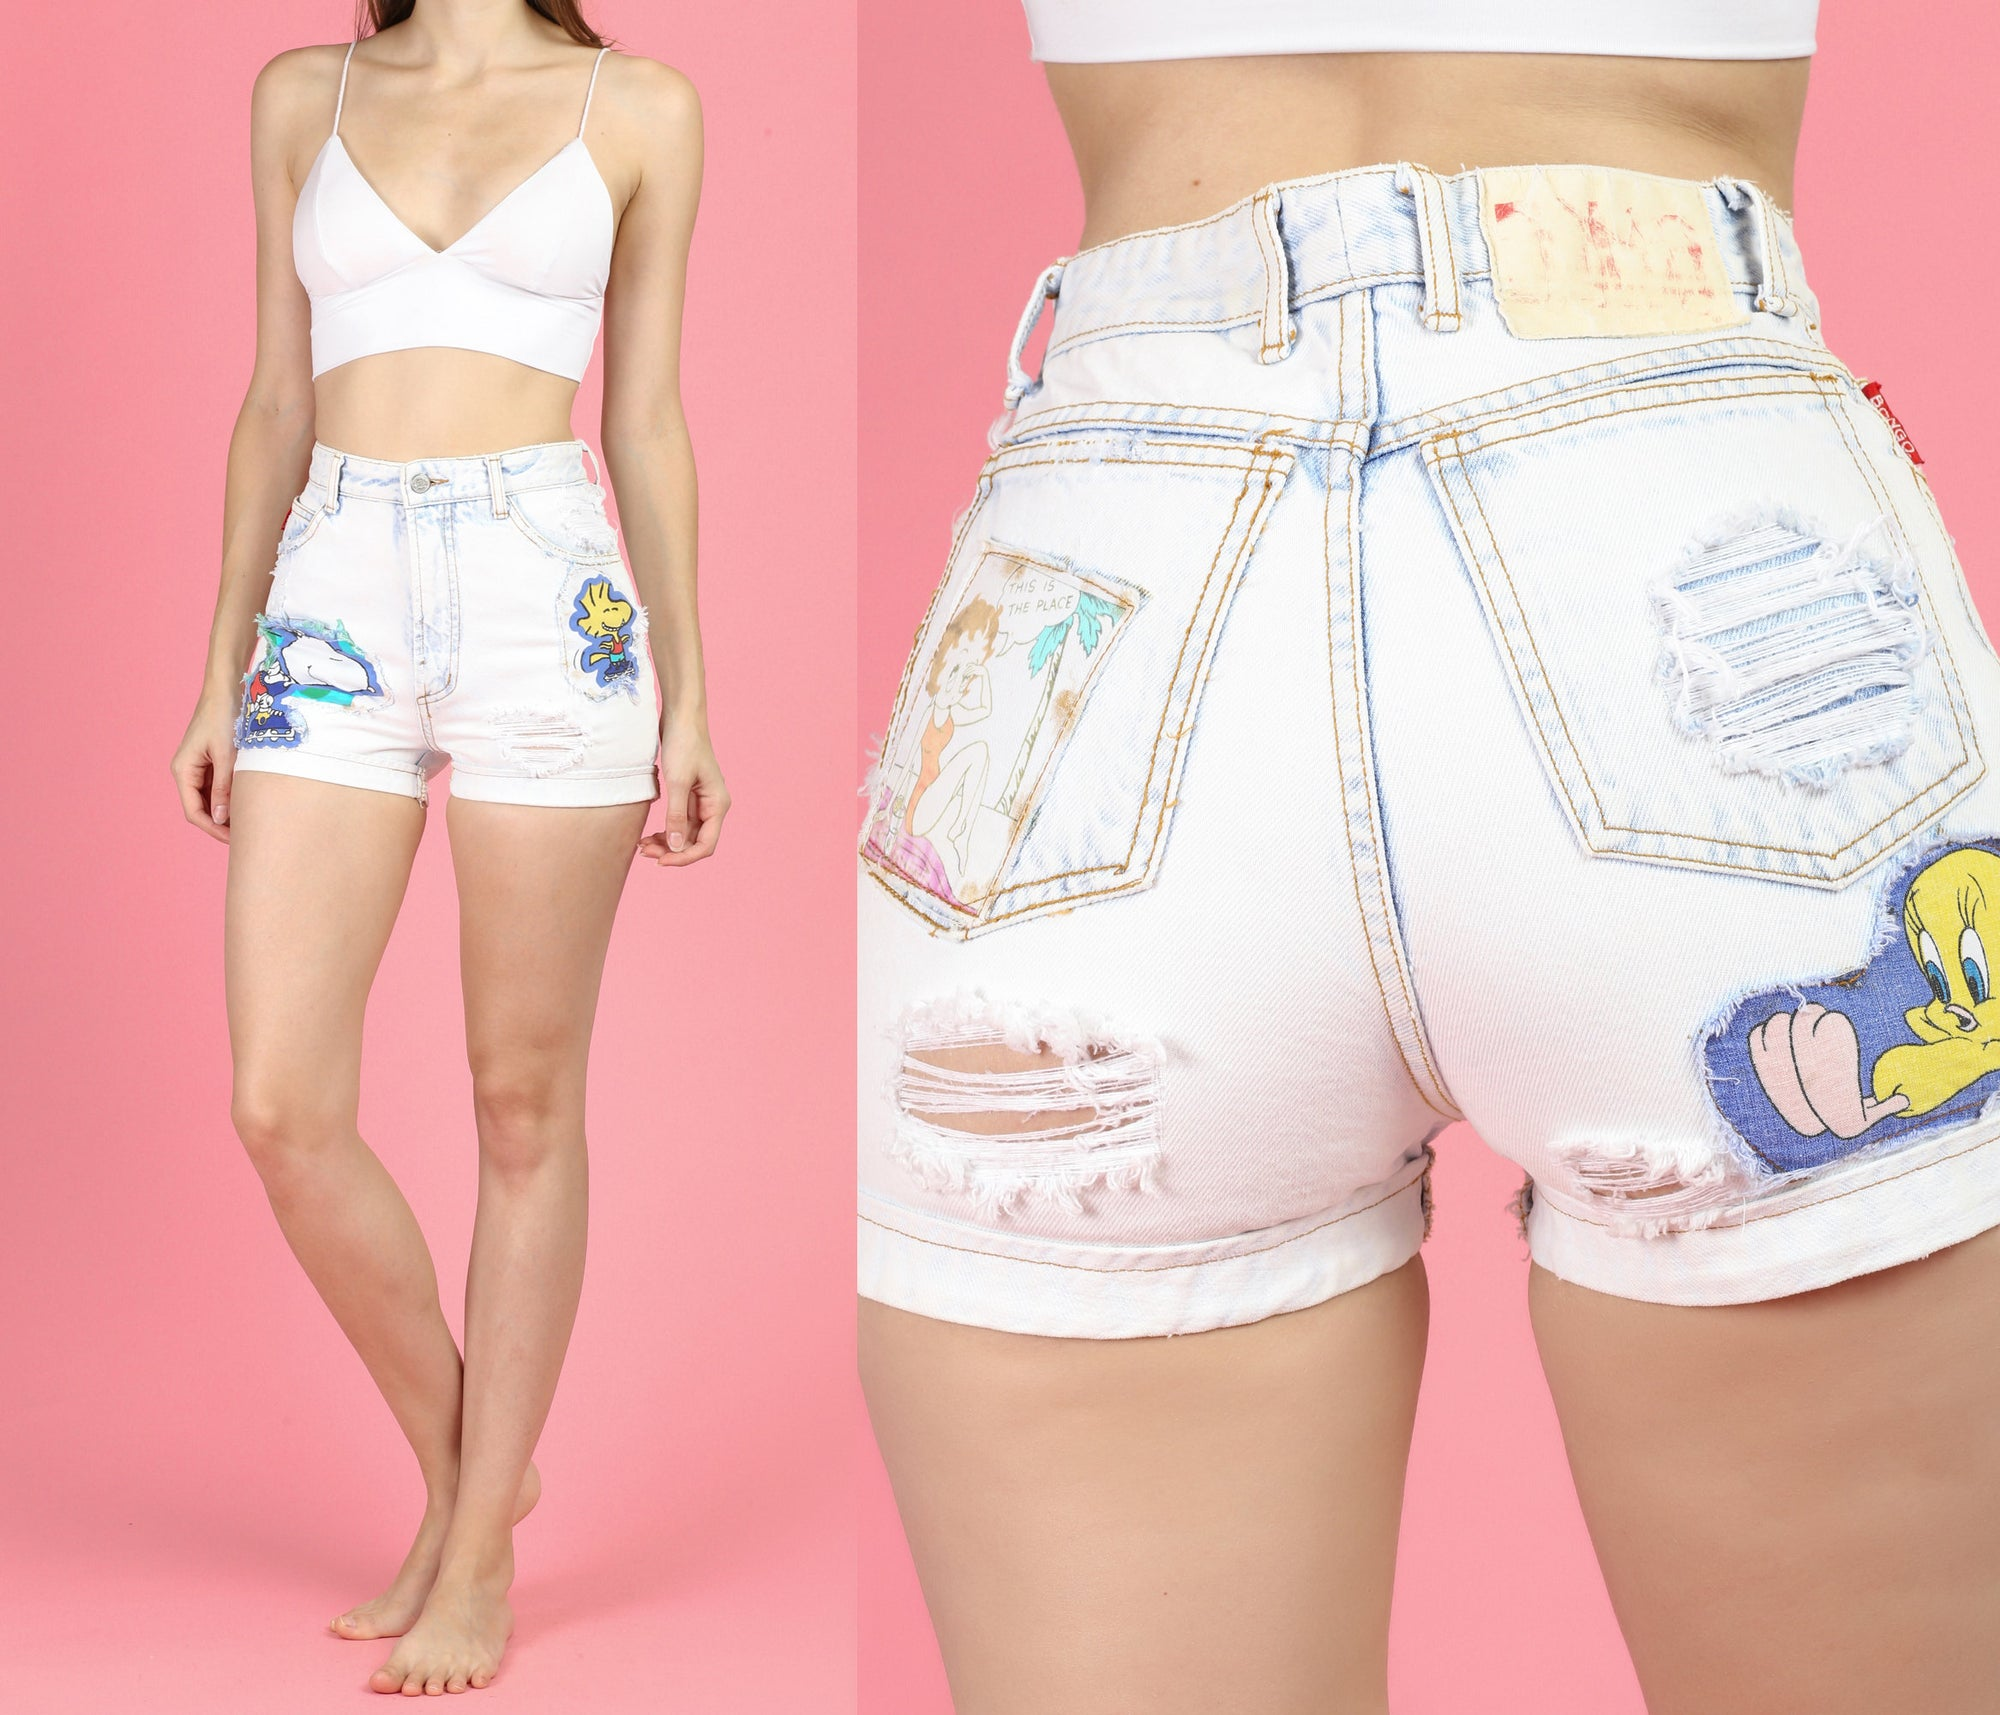 Vintage Bongo Cartoon Patch Jean Shorts - Small